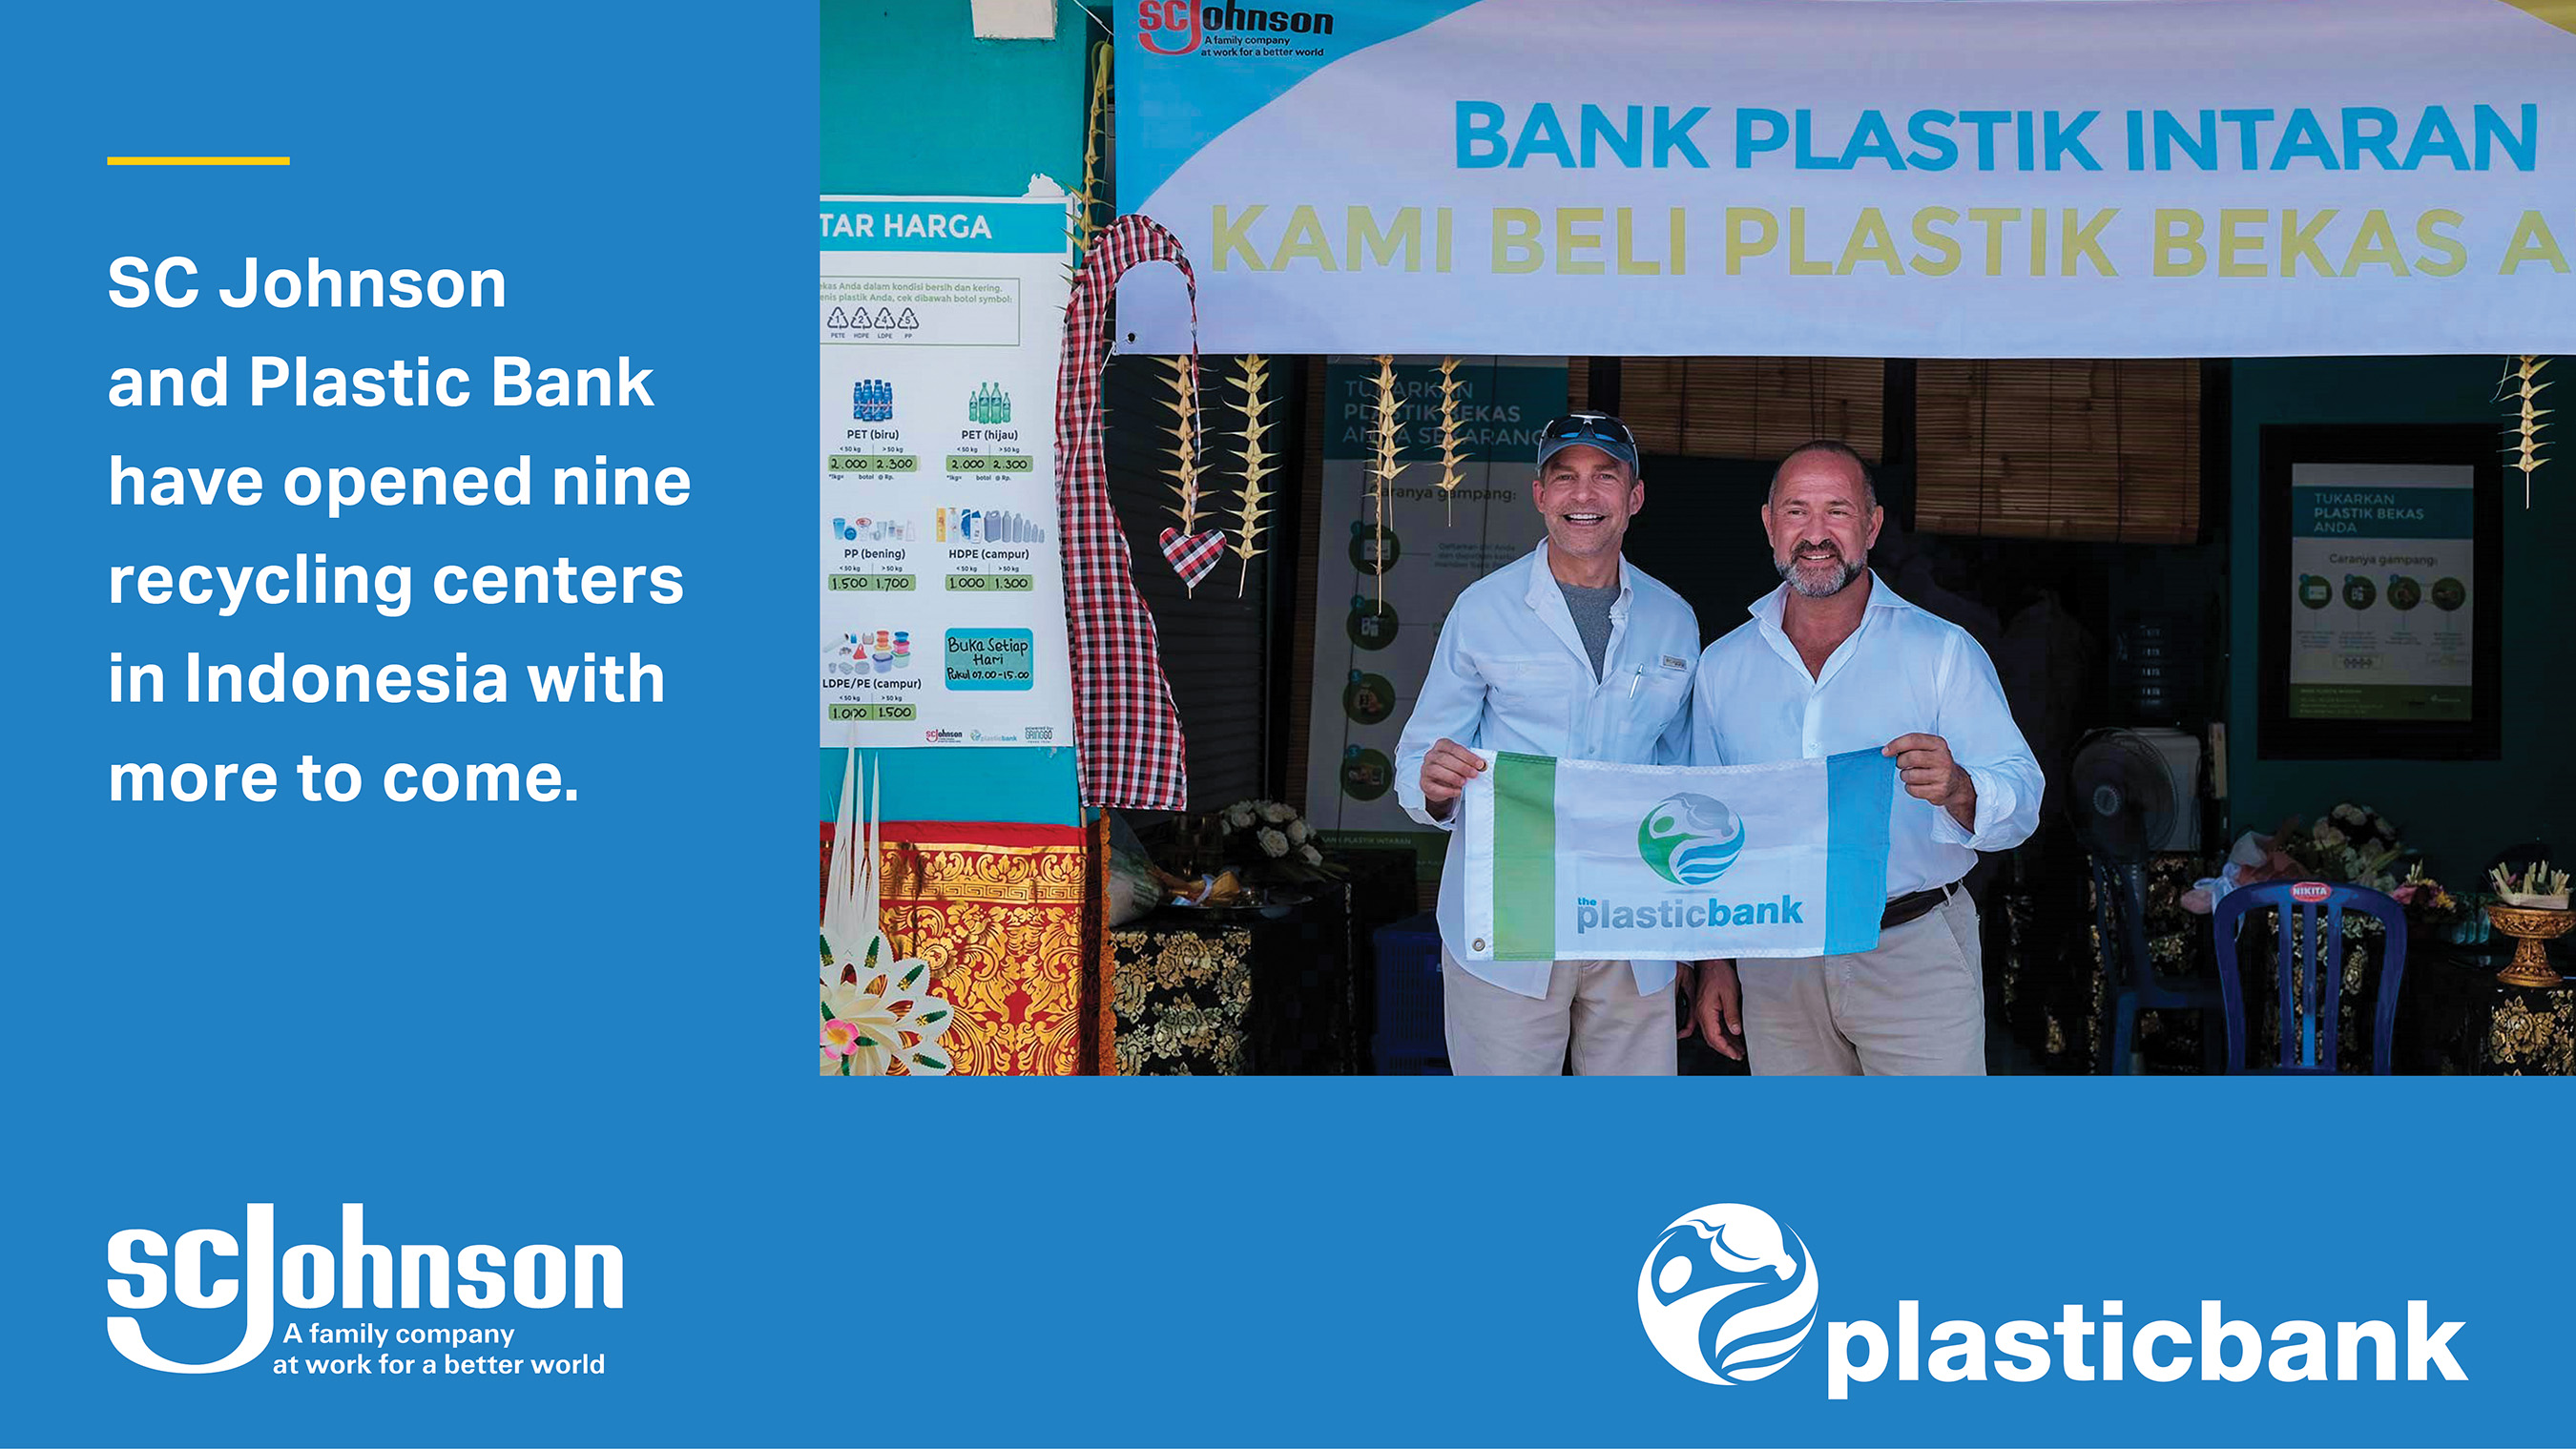 Fisk Johnson, Chairman and CEO of SC Johnson and David Katz, CEO of Plastic Bank, open a recycling center in Indonesia.